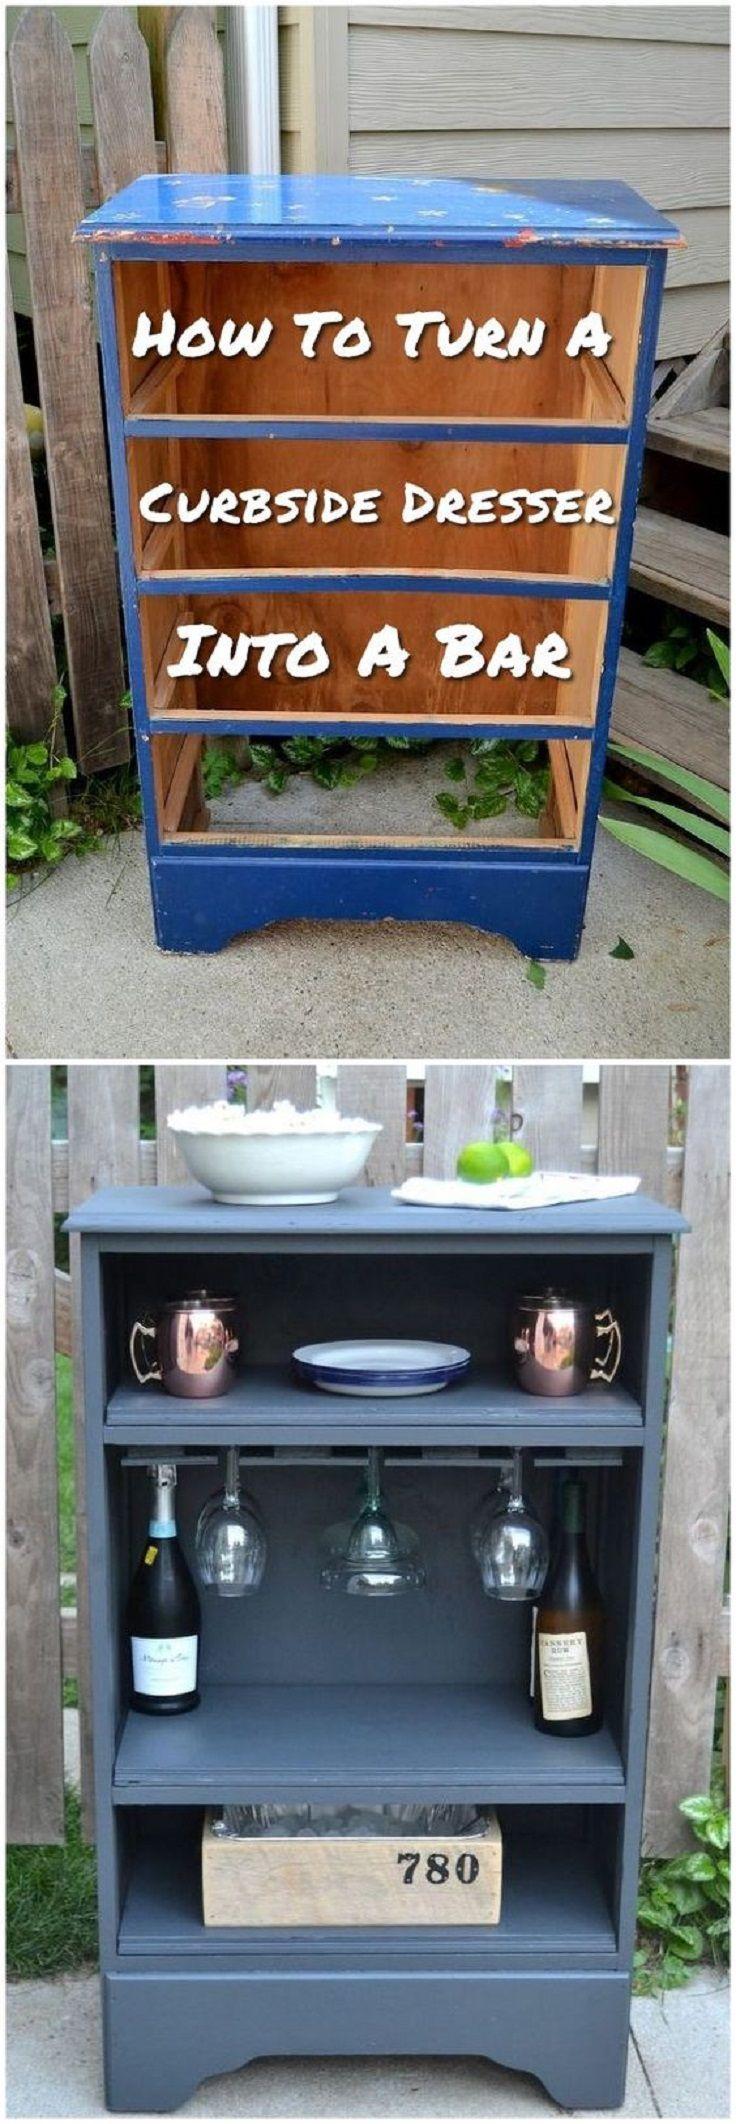 Diy house projects pinterest